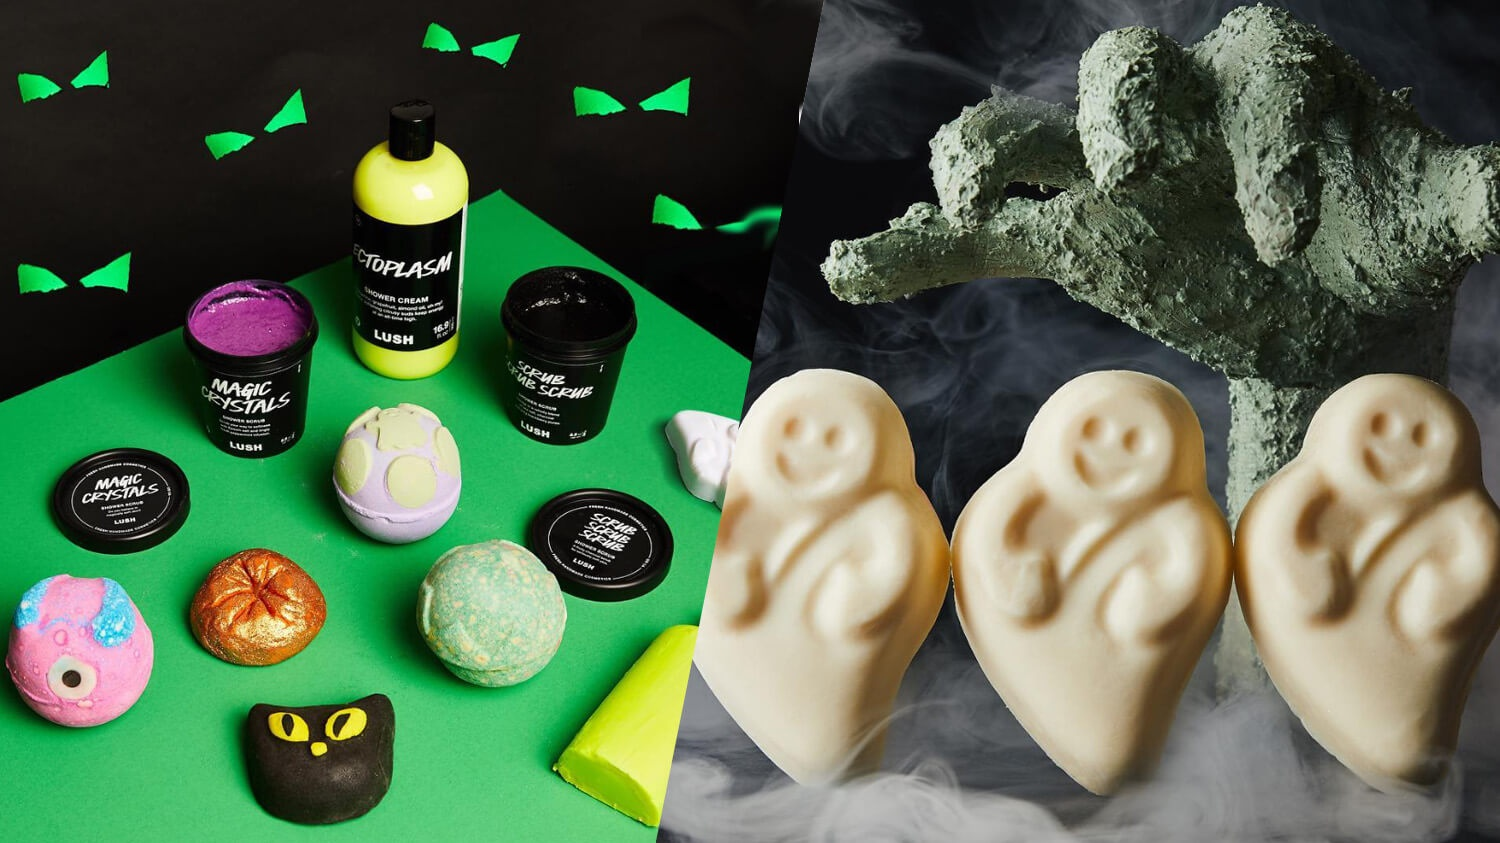 Lush Cosmetics Launches Spooky Vegan Halloween Beauty Collection